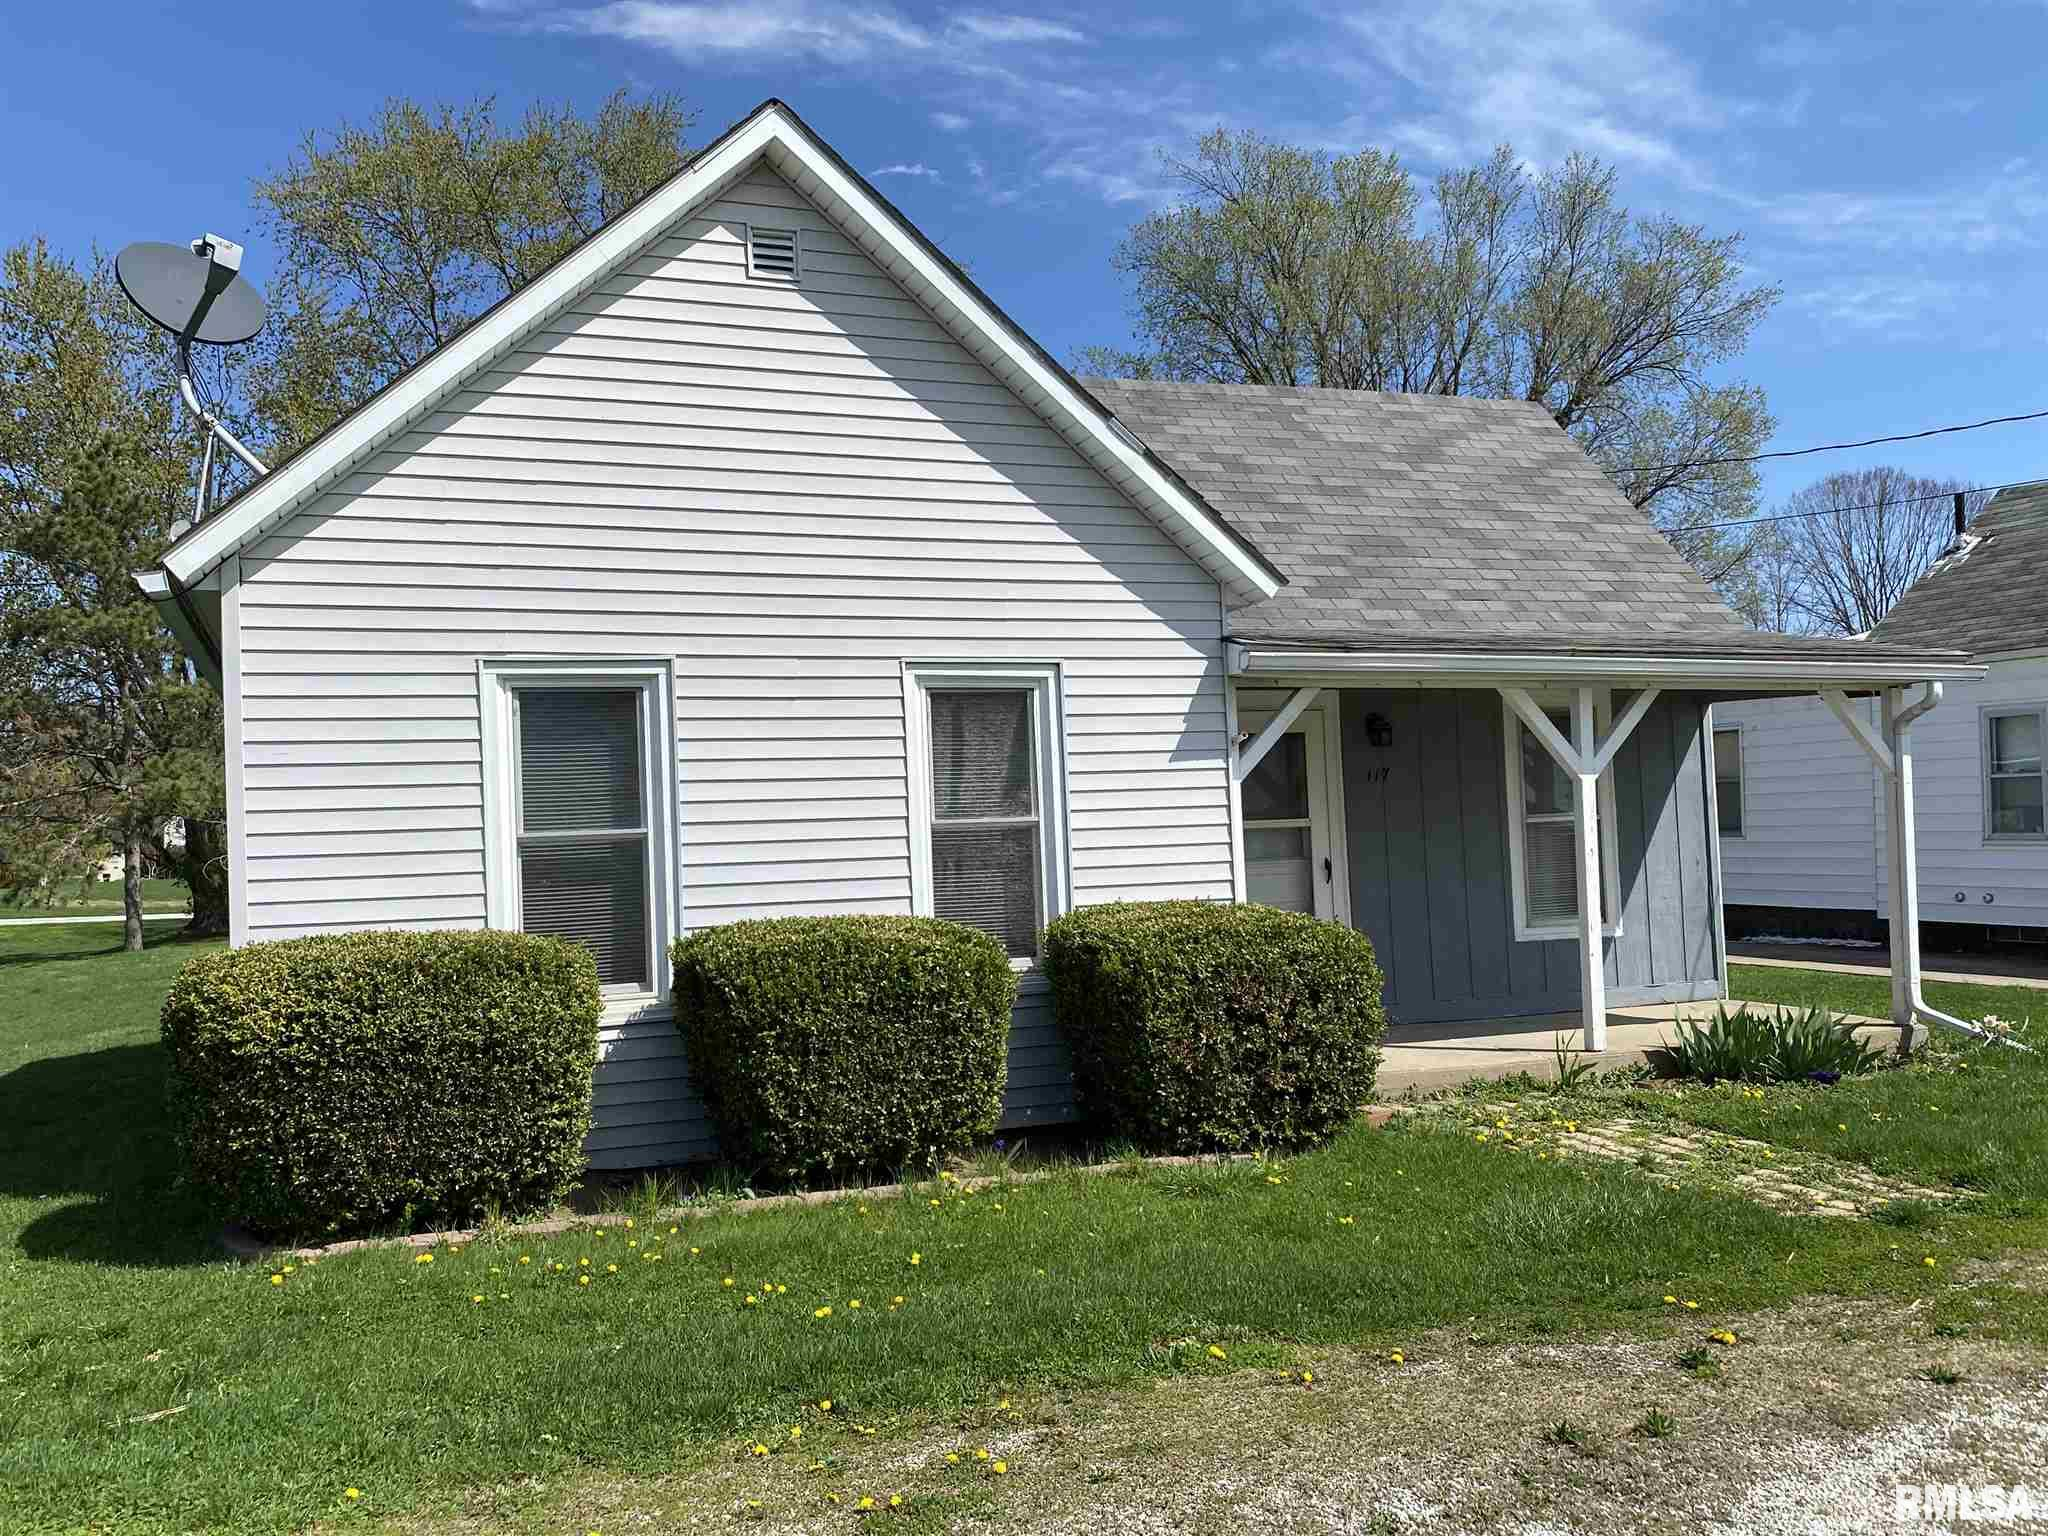 127 W FULTON Property Photo - Dunfermline, IL real estate listing